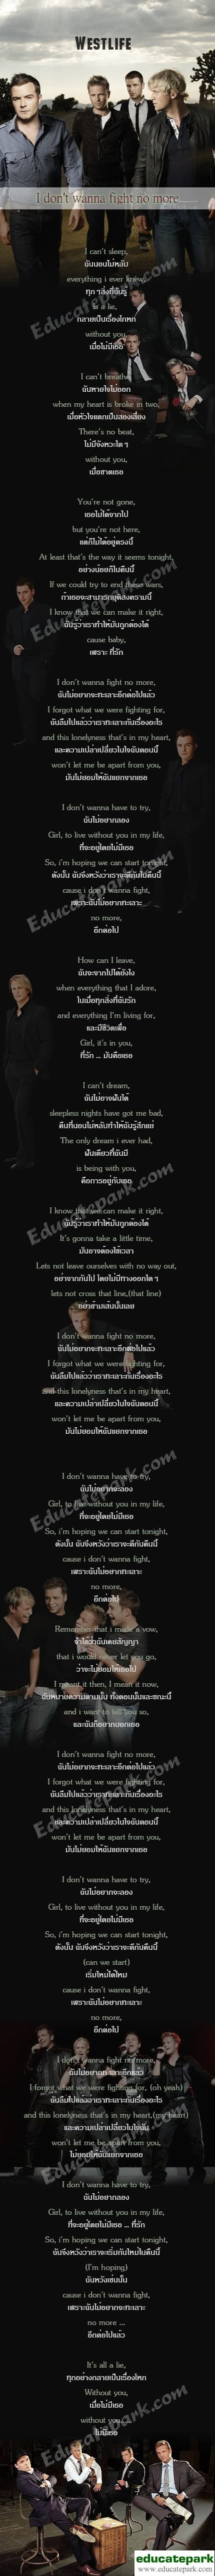 แปลเพลง I Don't Wanna Fight No More - Westlife